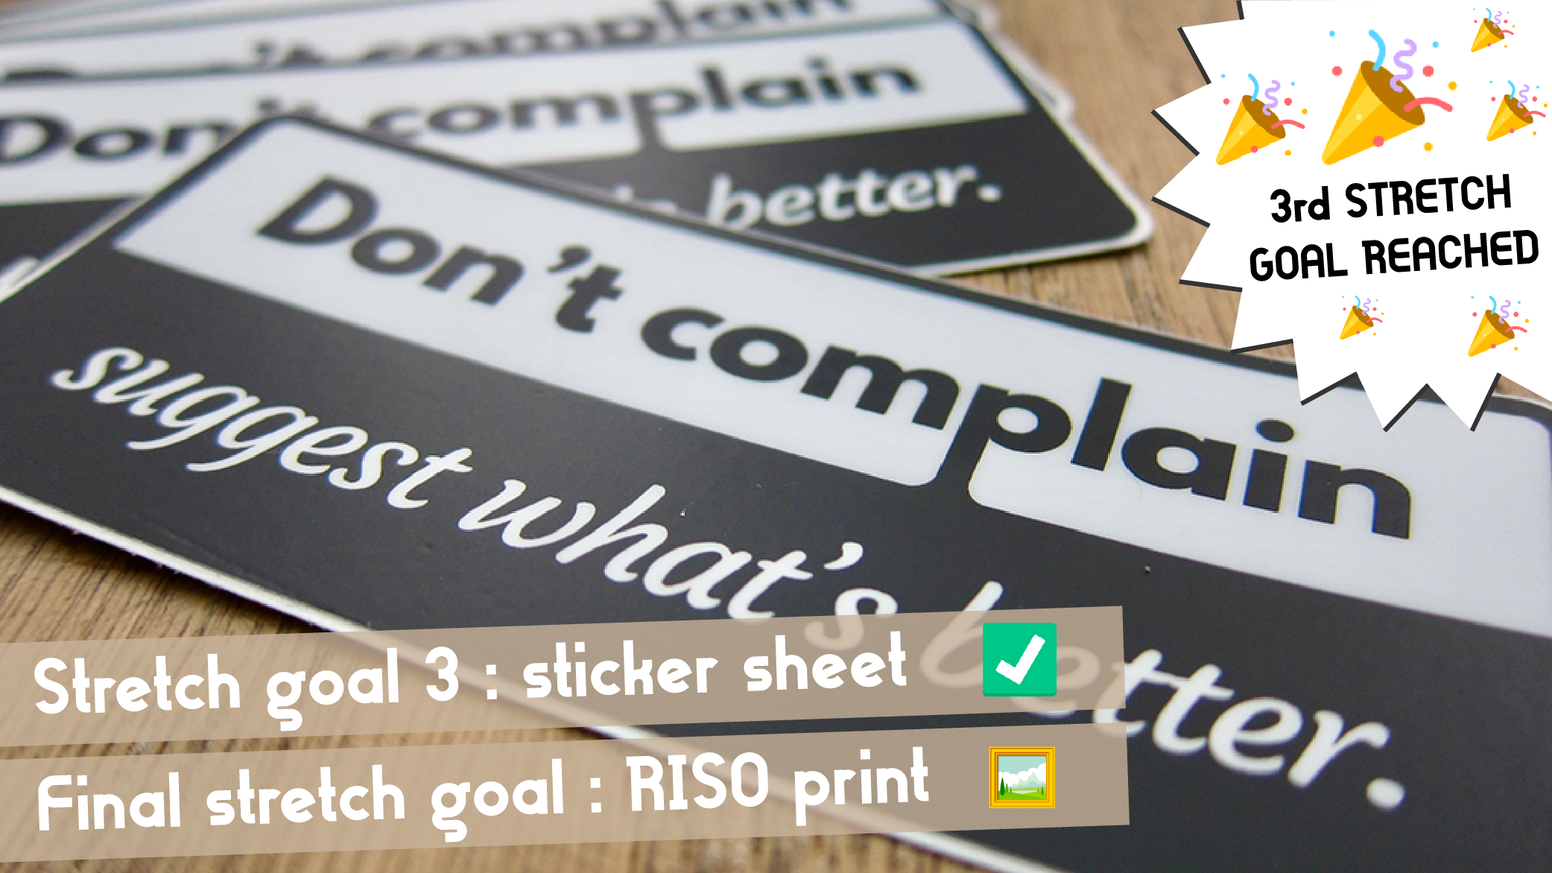 Don't Complain, suggest what's better. A collection of stickers and prints as a reminder for taking a more constructive stance in life.